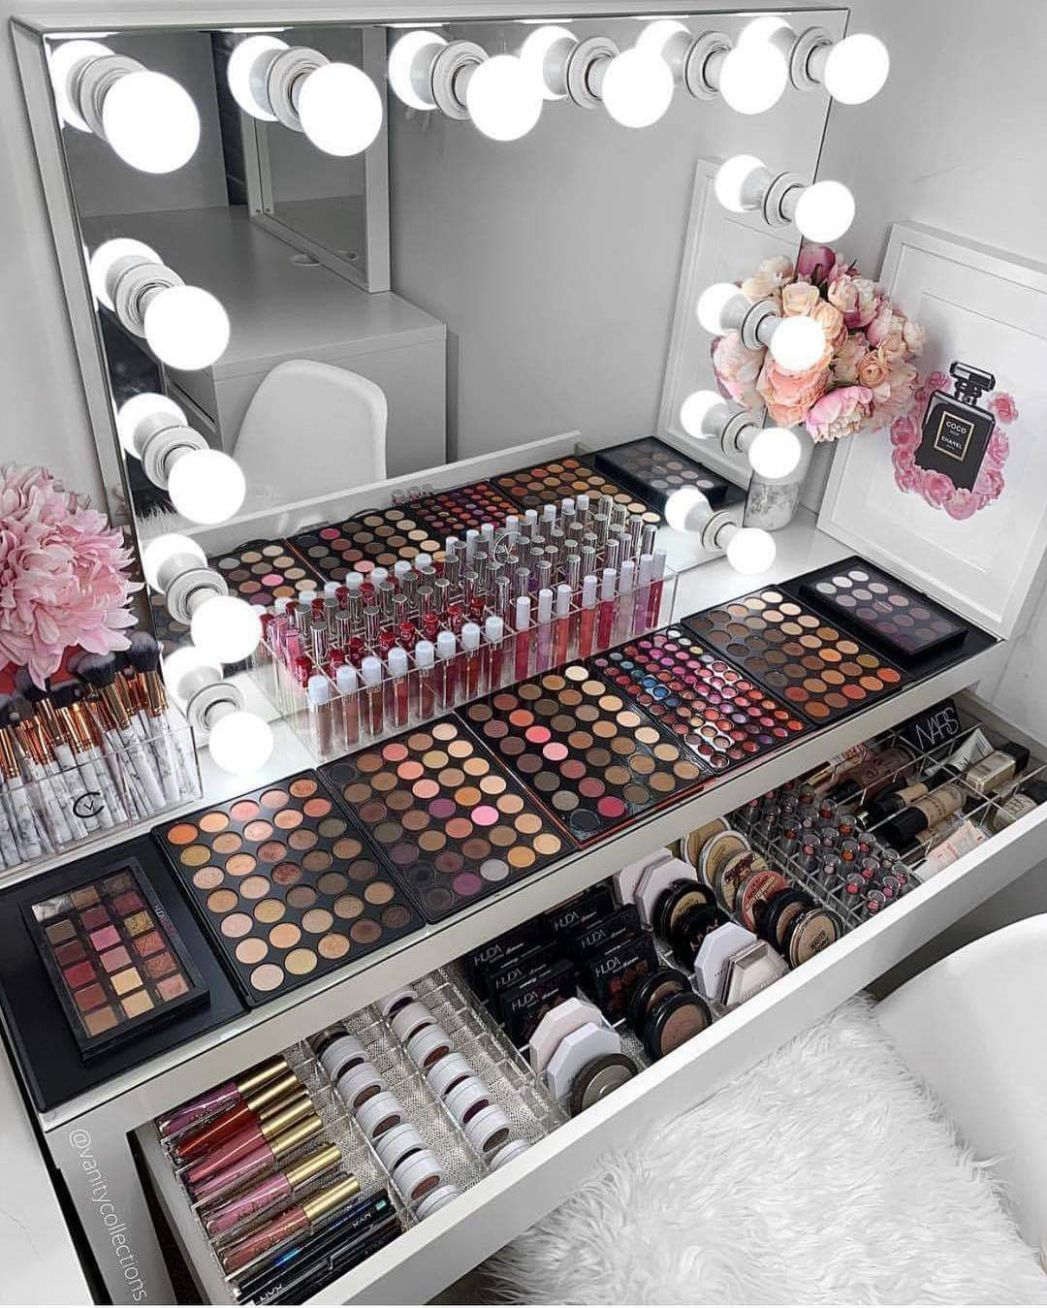 Makeup goals! I love makeup so much and one day i want to have a ...